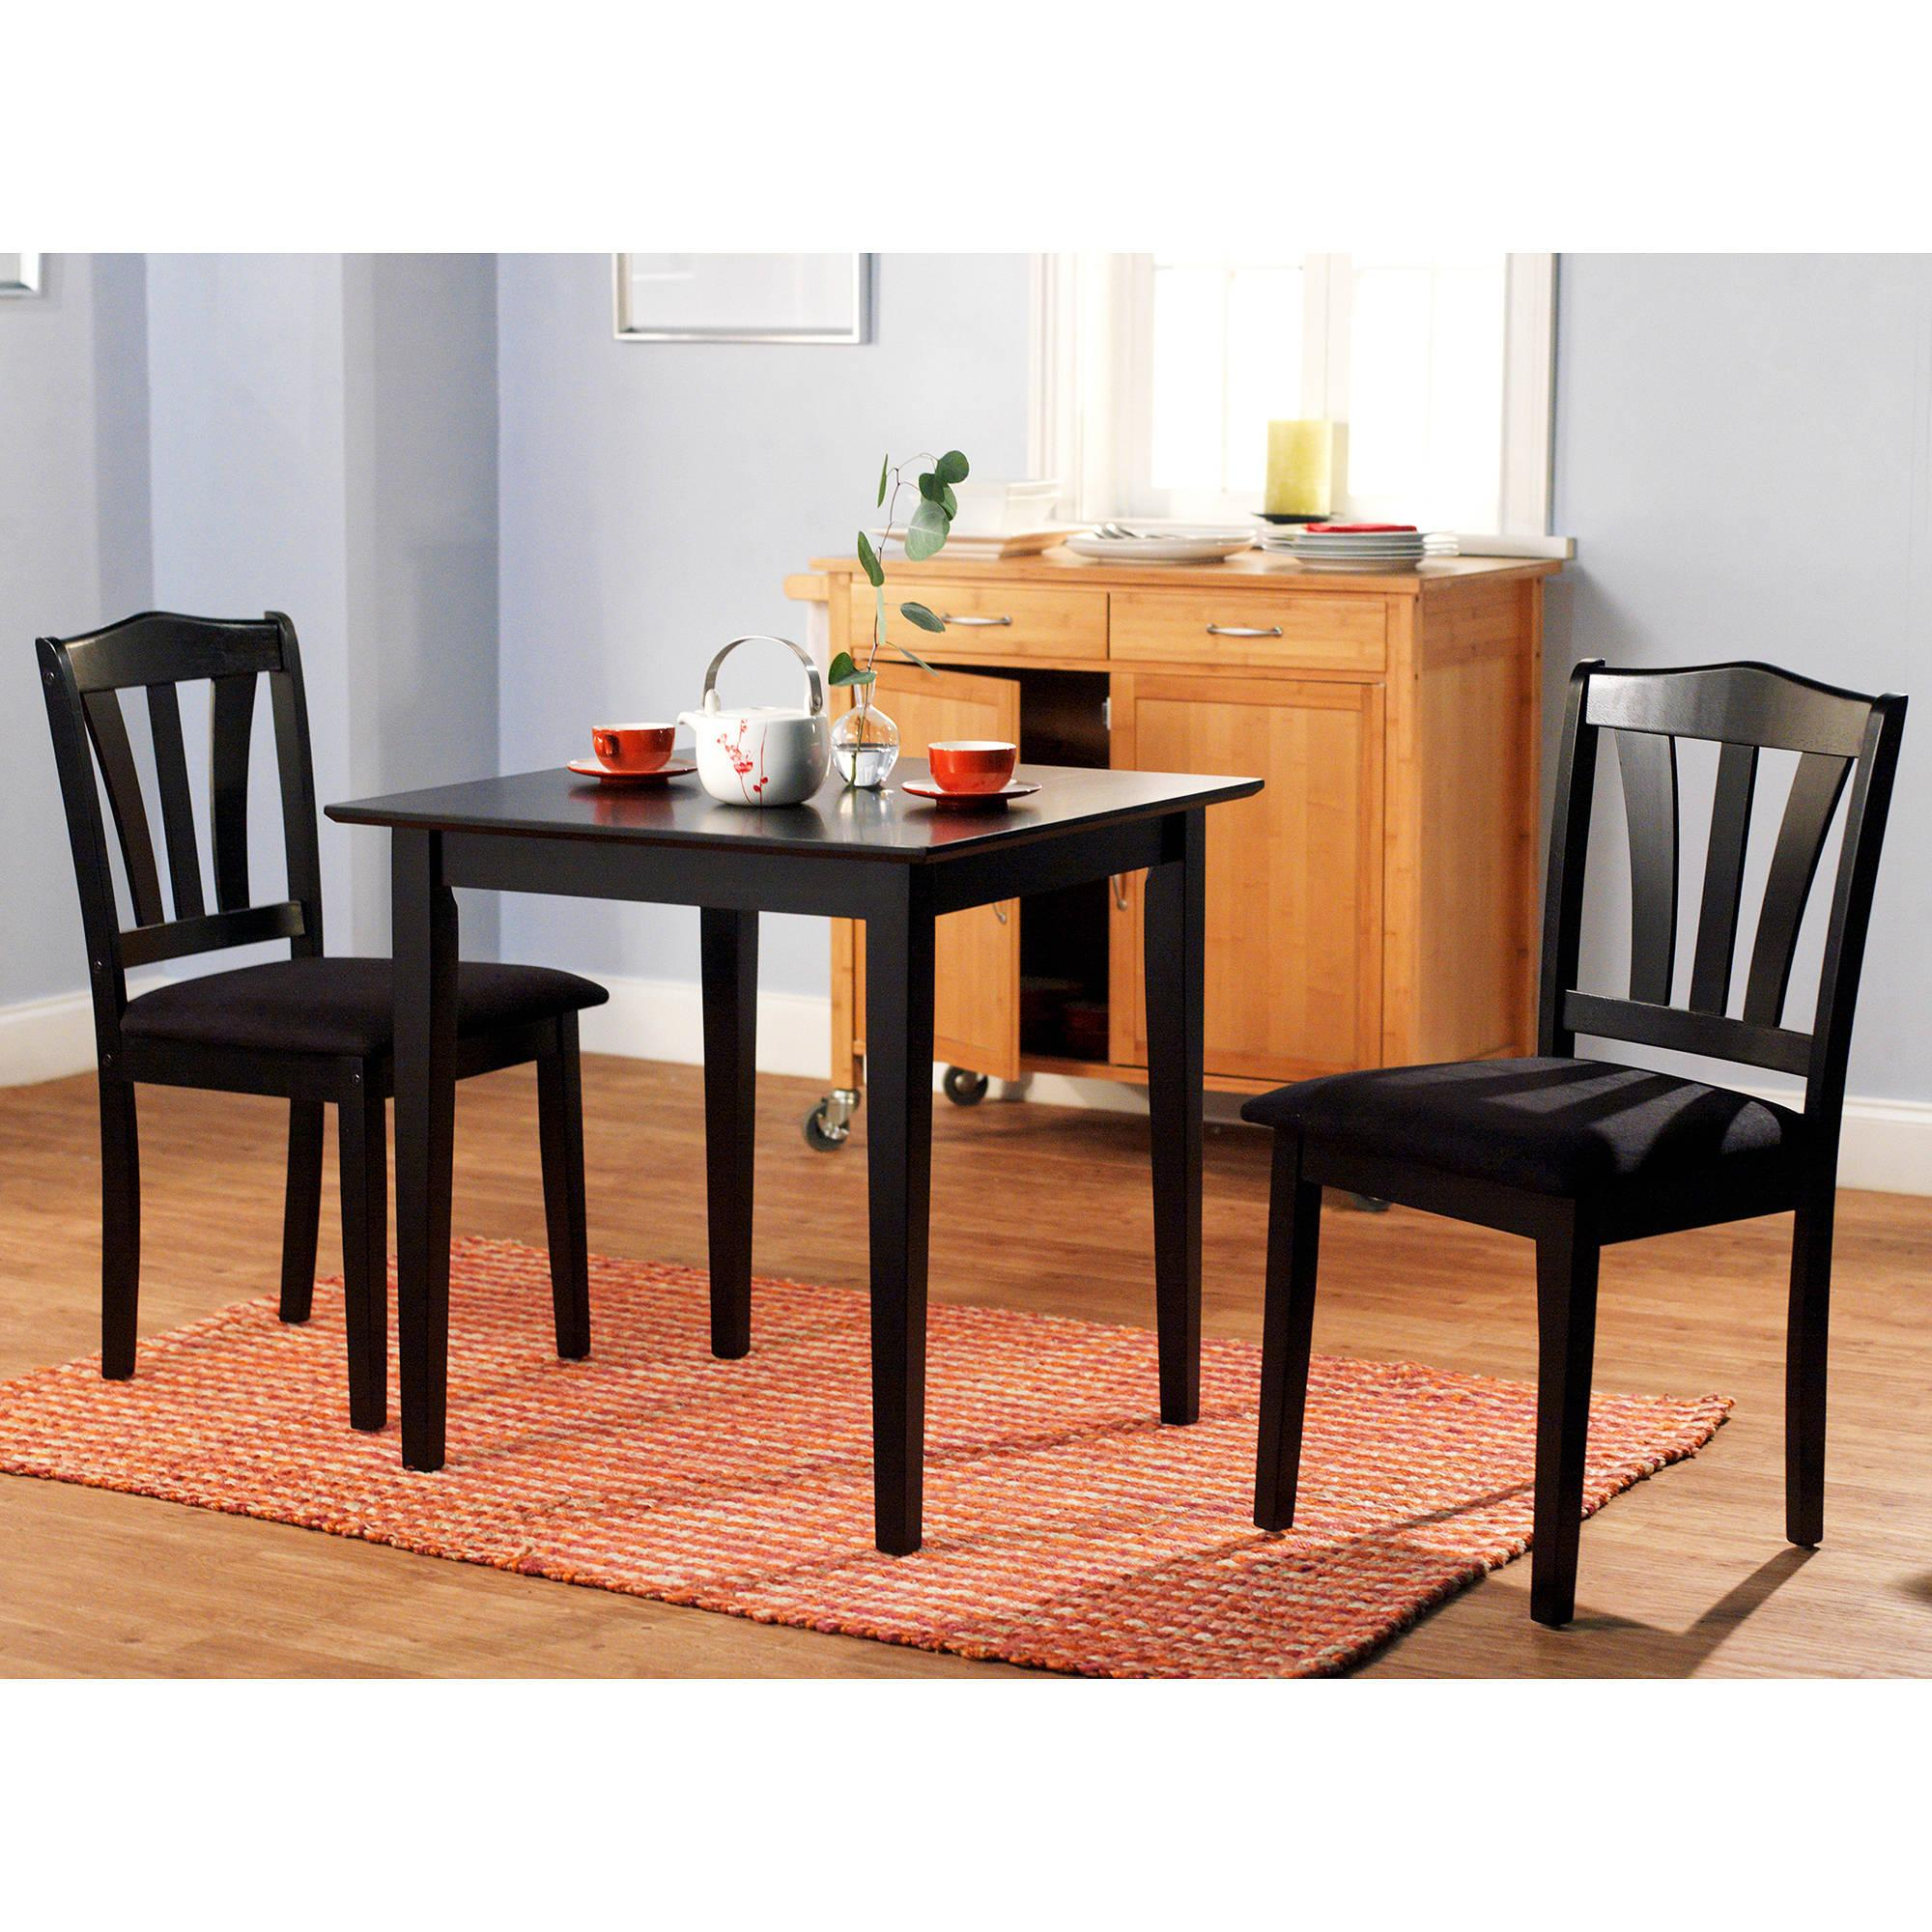 Kitchen Dining Room Chairs: 3 Piece Dining Set Table 2 Chairs Kitchen Room Wood